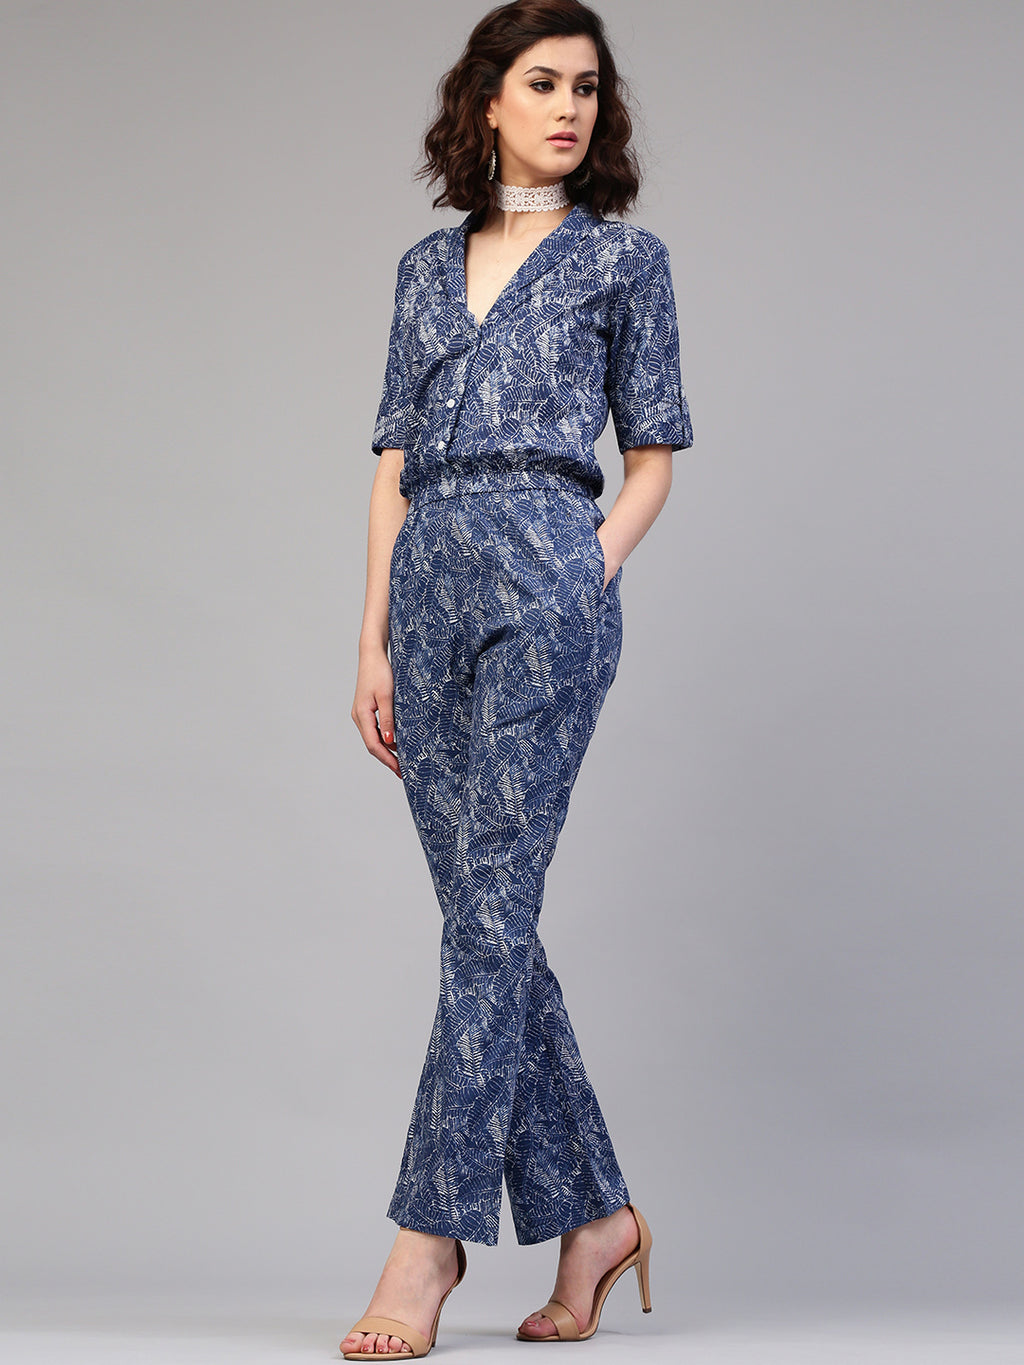 Blue Printed Roll-Up Sleeve Jumpsuit | Znx4ever.com